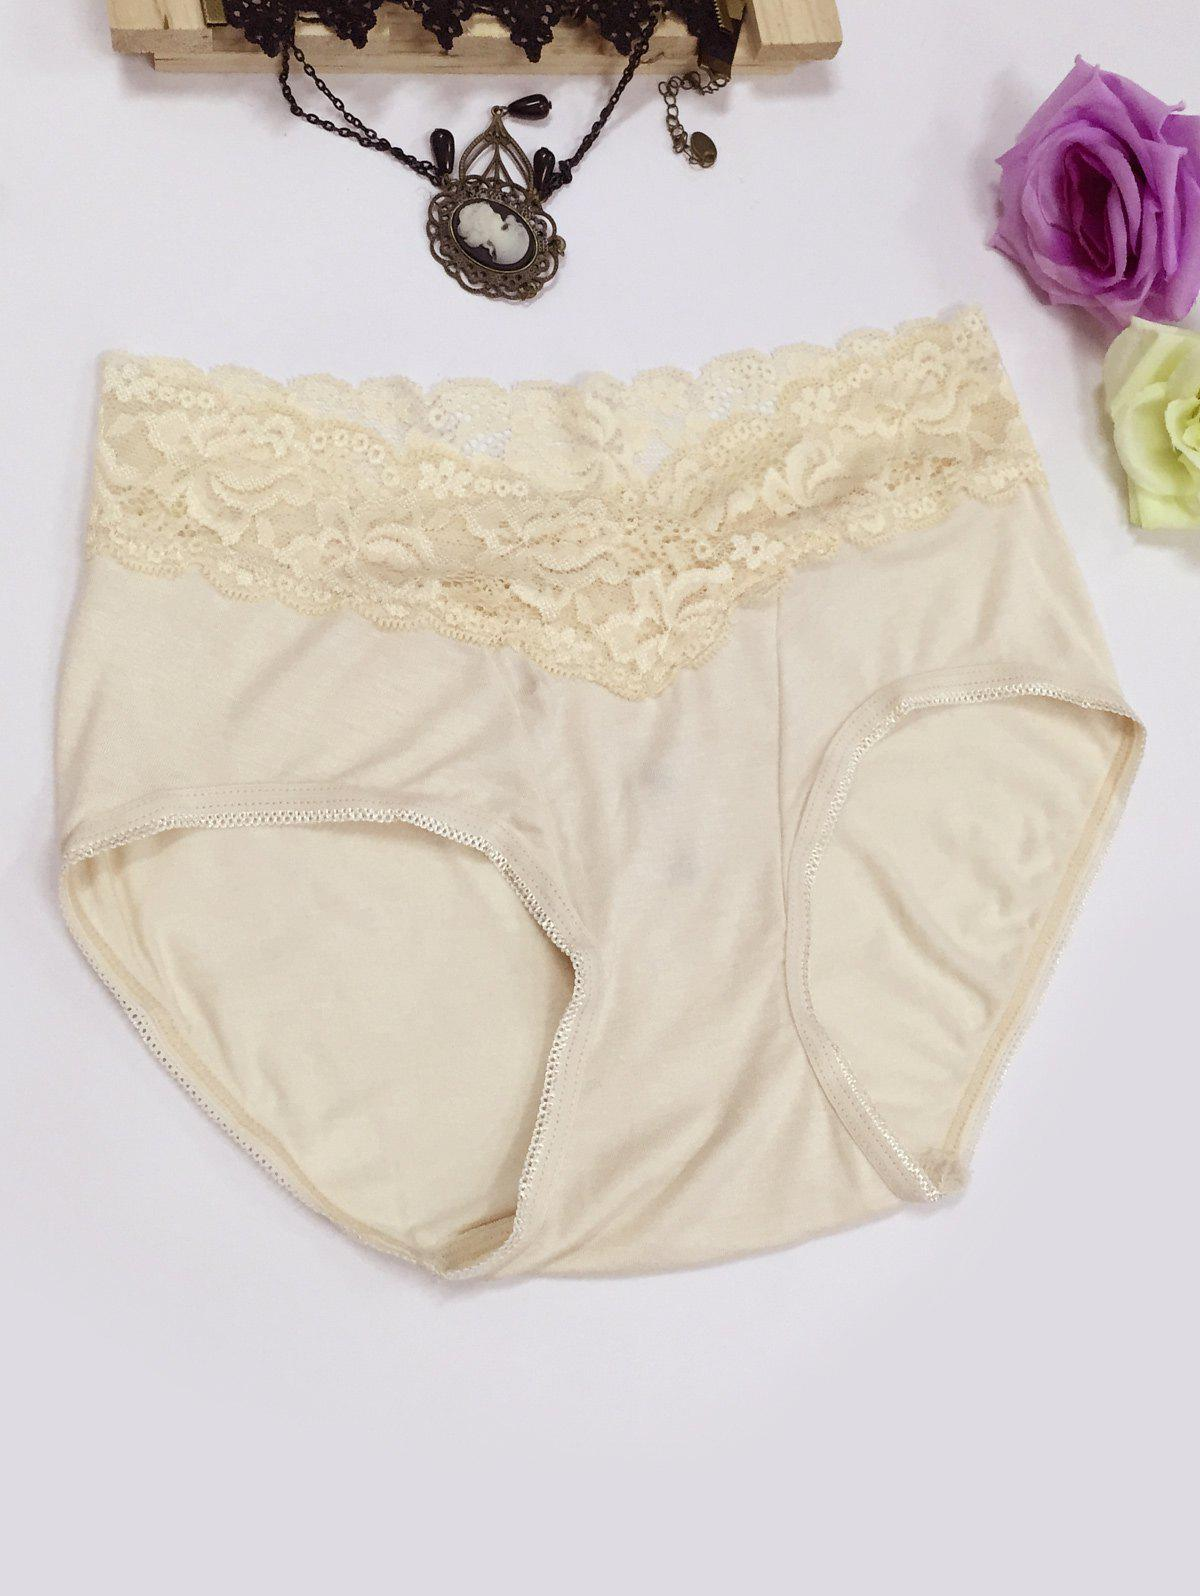 Lace Panel High Waisted Briefs - COMPLEXION M